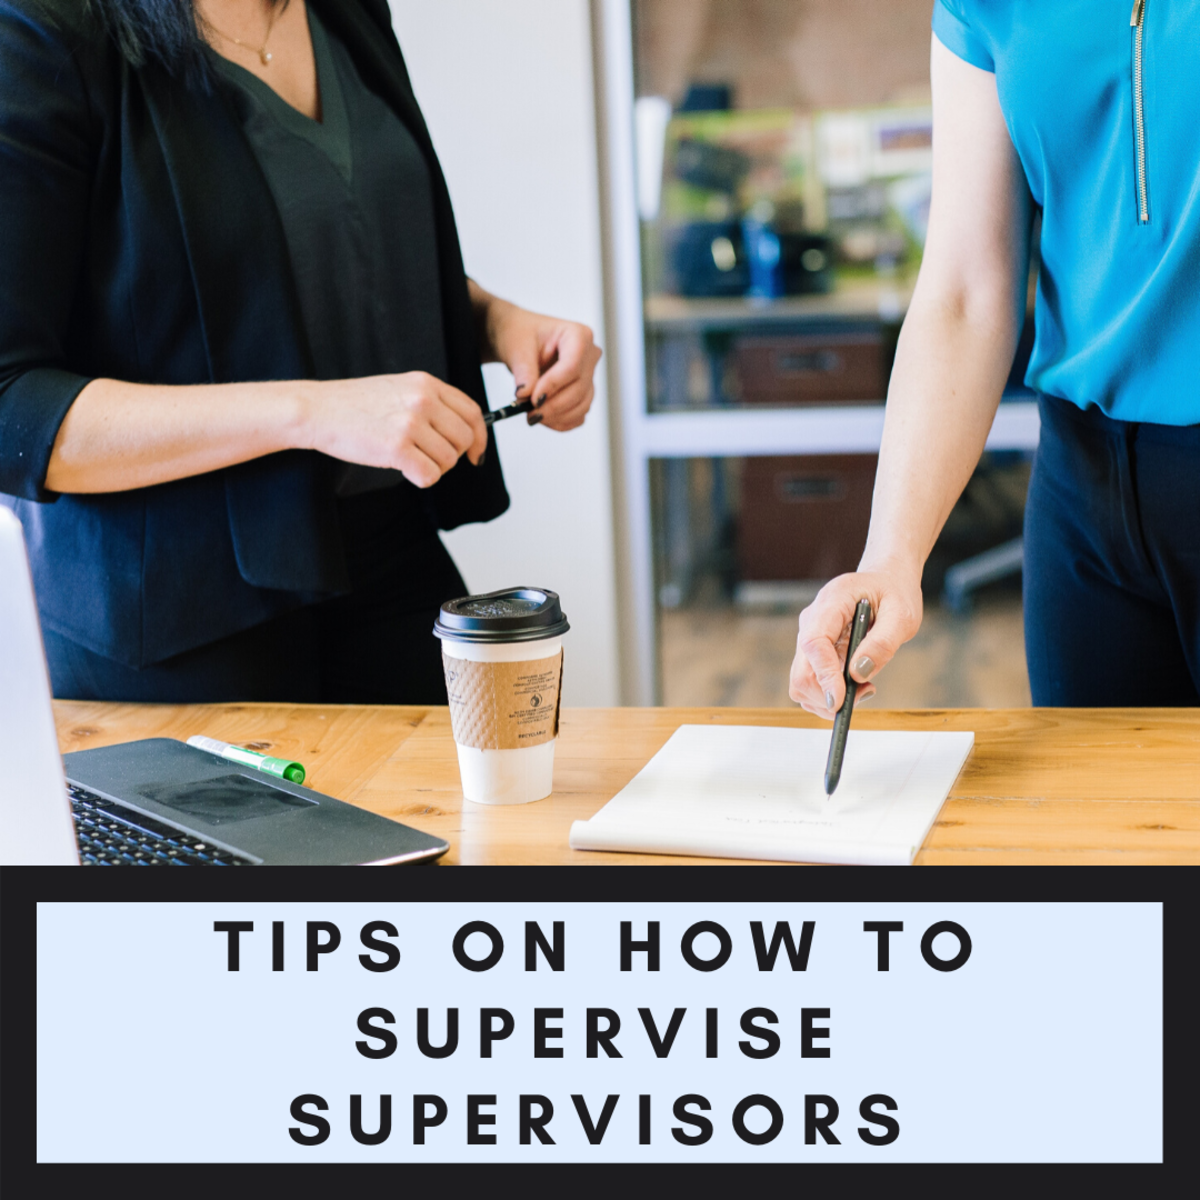 15 Tips on How to Supervise Supervisors